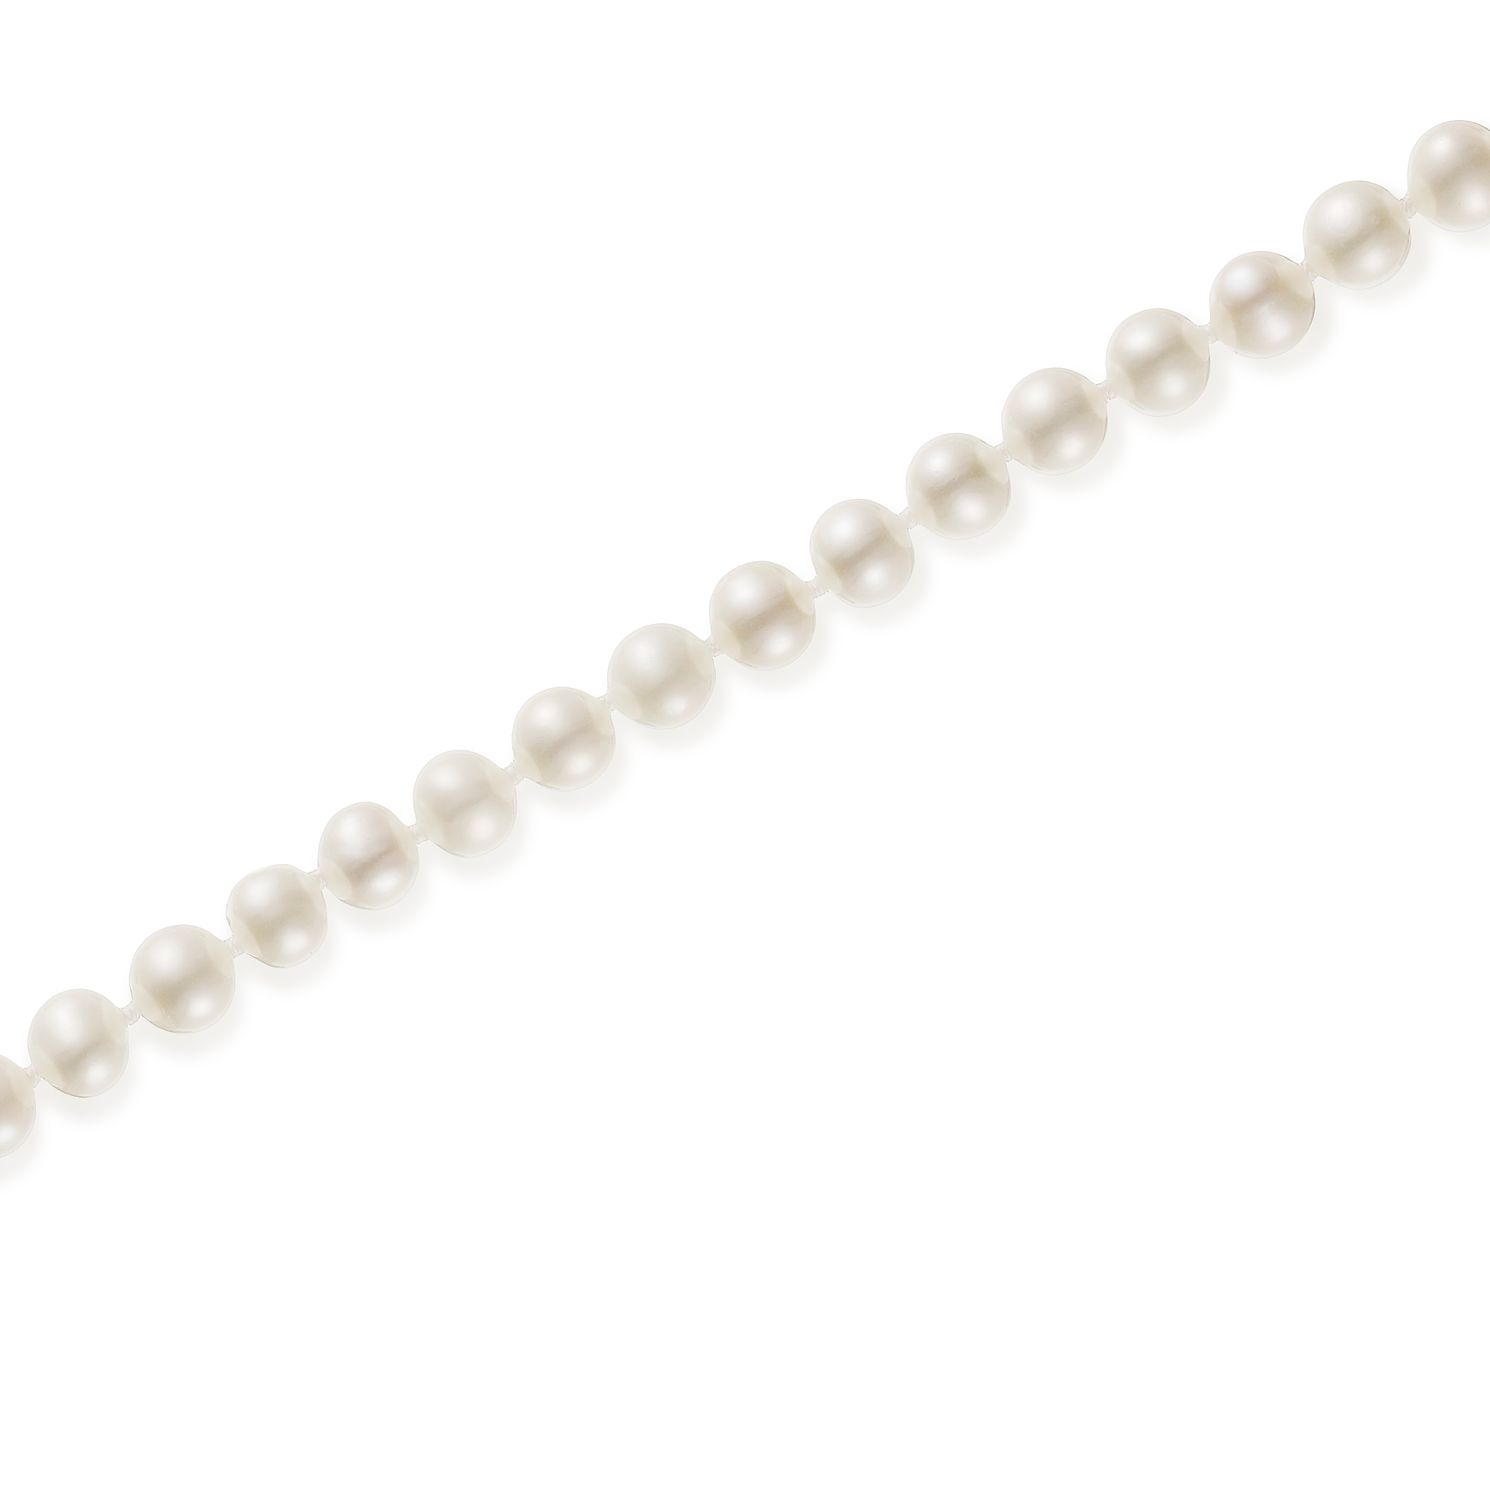 9ct White Gold 6mm Cultured Freshwater Pearl 26